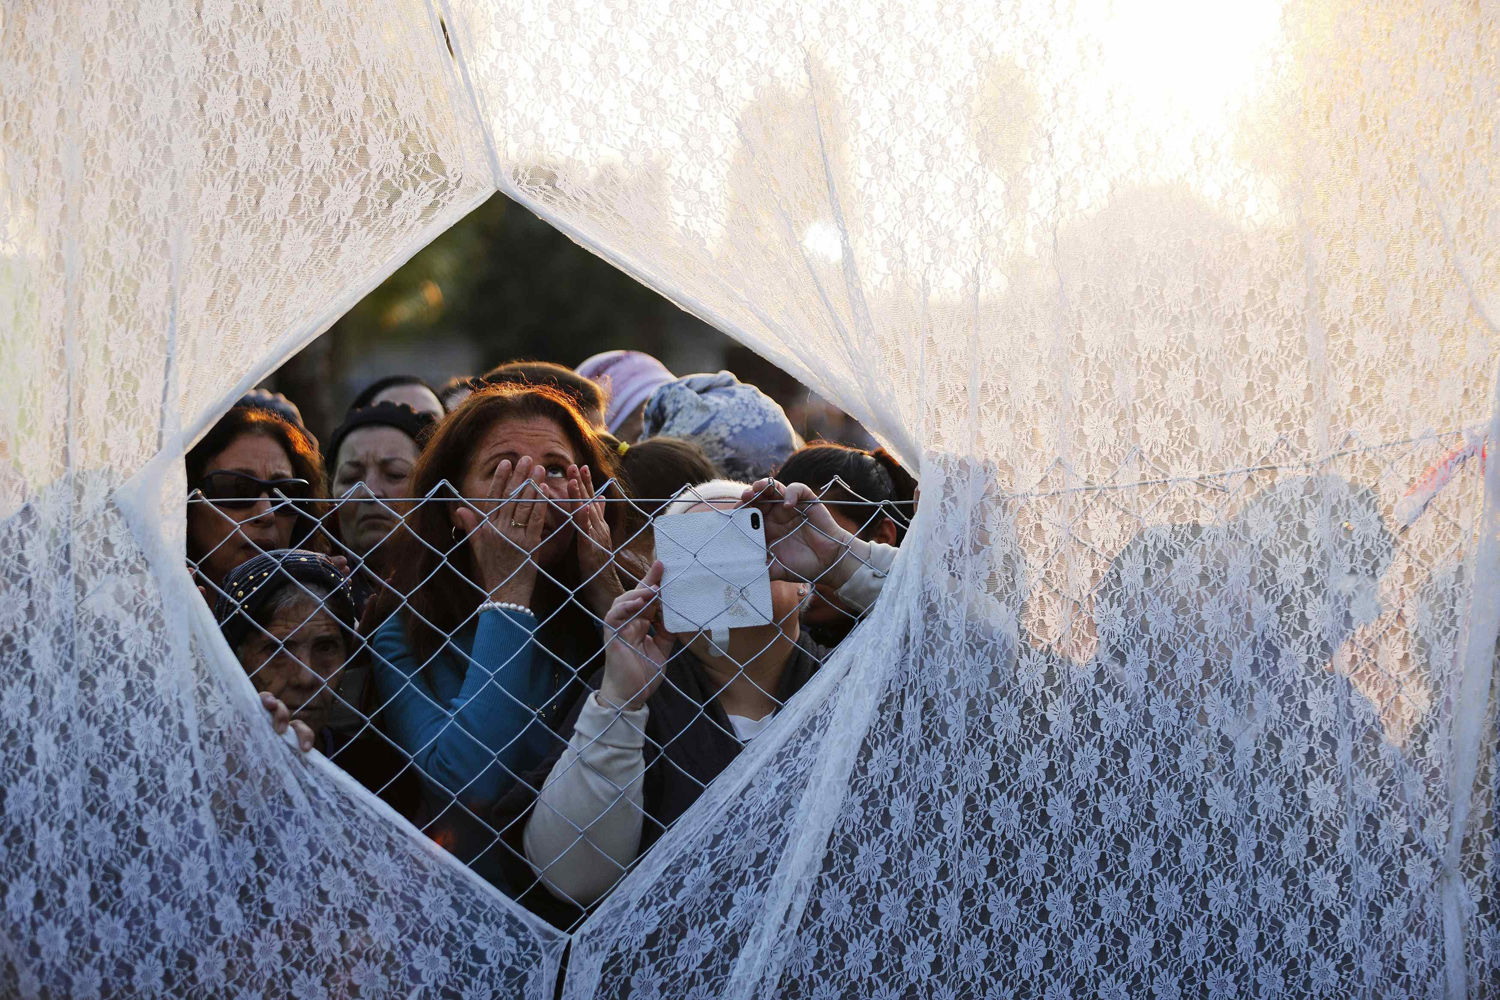 Jan. 5, 2014. Jewish worshippers pray behind a curtain at the gravesite of Rabbi Yisrael Abuhatzeira, a Moroccan-born sage and kabbalist also known as the Baba Sali, during an annual pilgrimage held on the anniversary of his death in the southern Israeli town of Netivot.